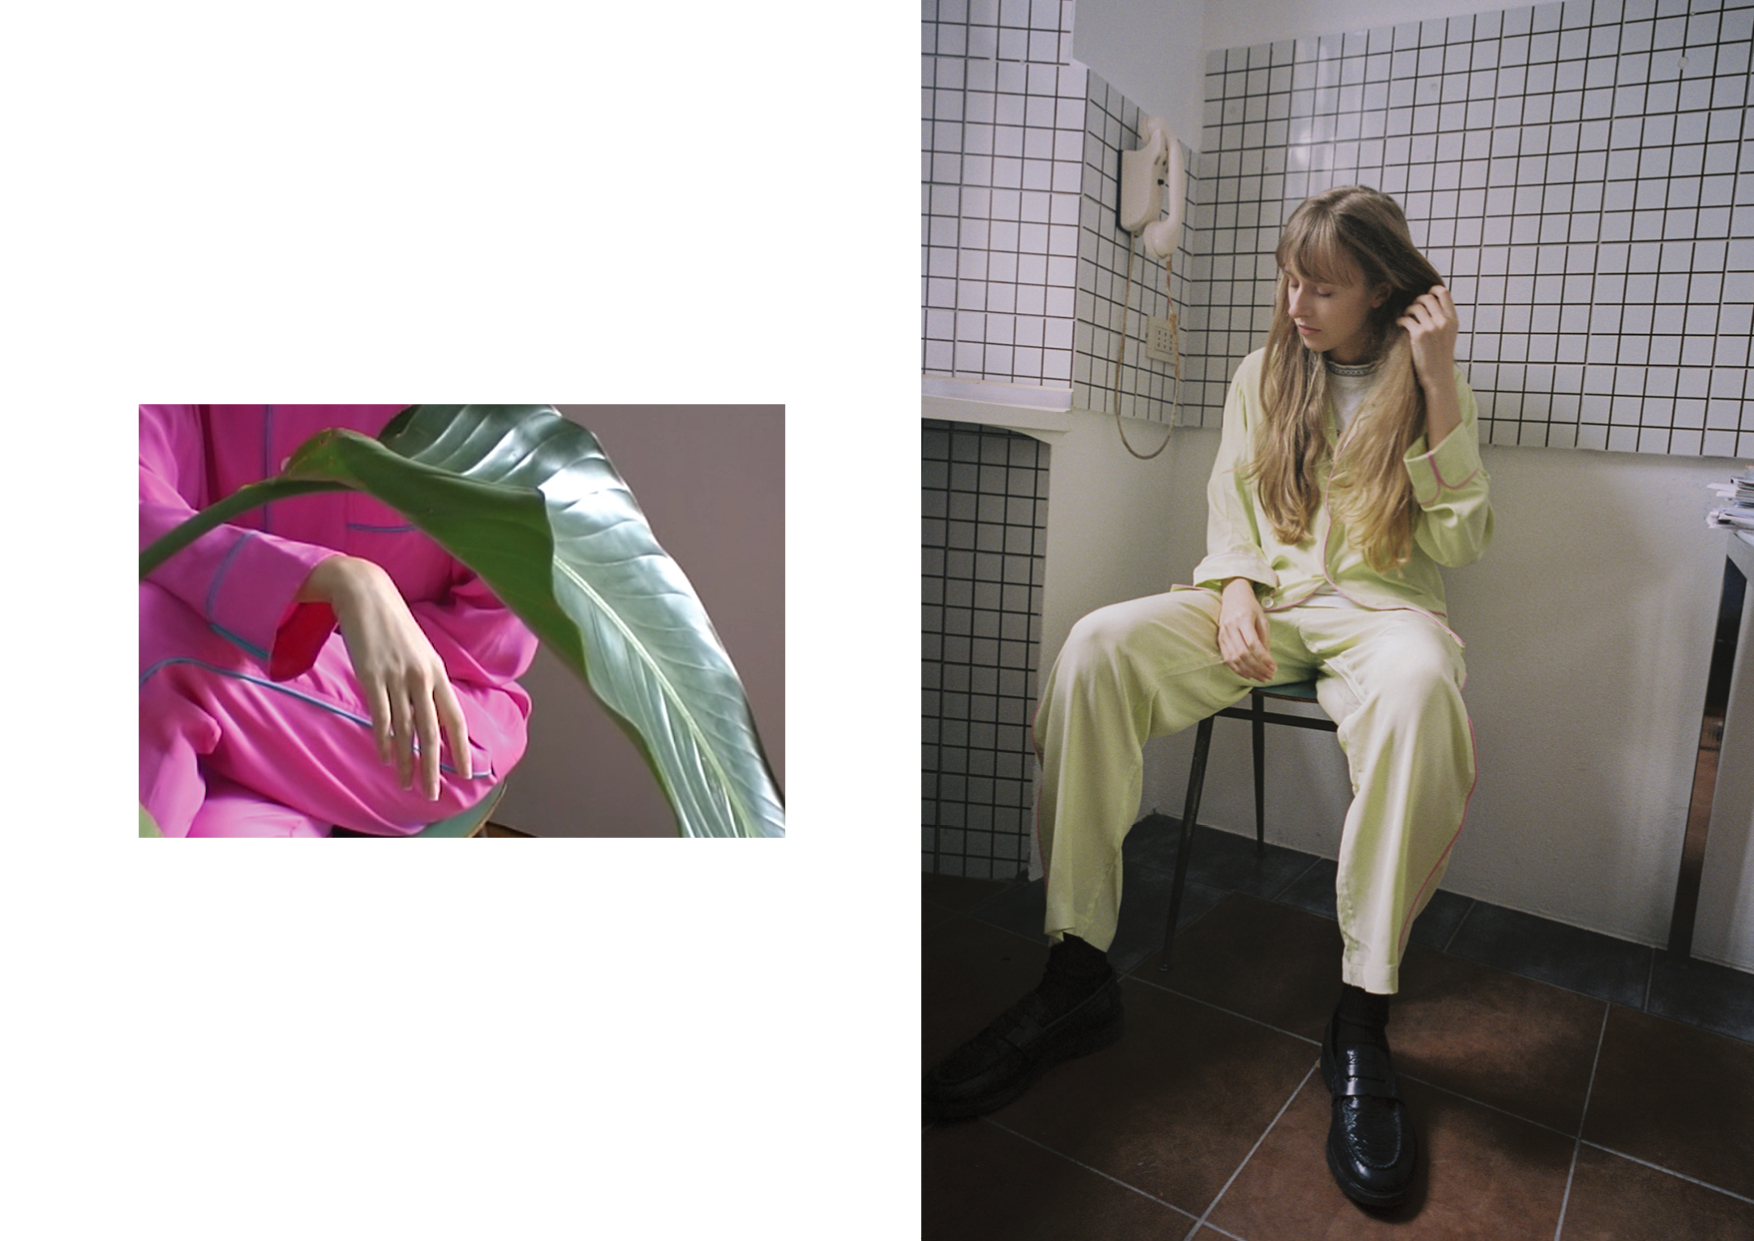 Silk nightwear shirt and trousers OLATZ, t-shirt and leather loafers stylist archive